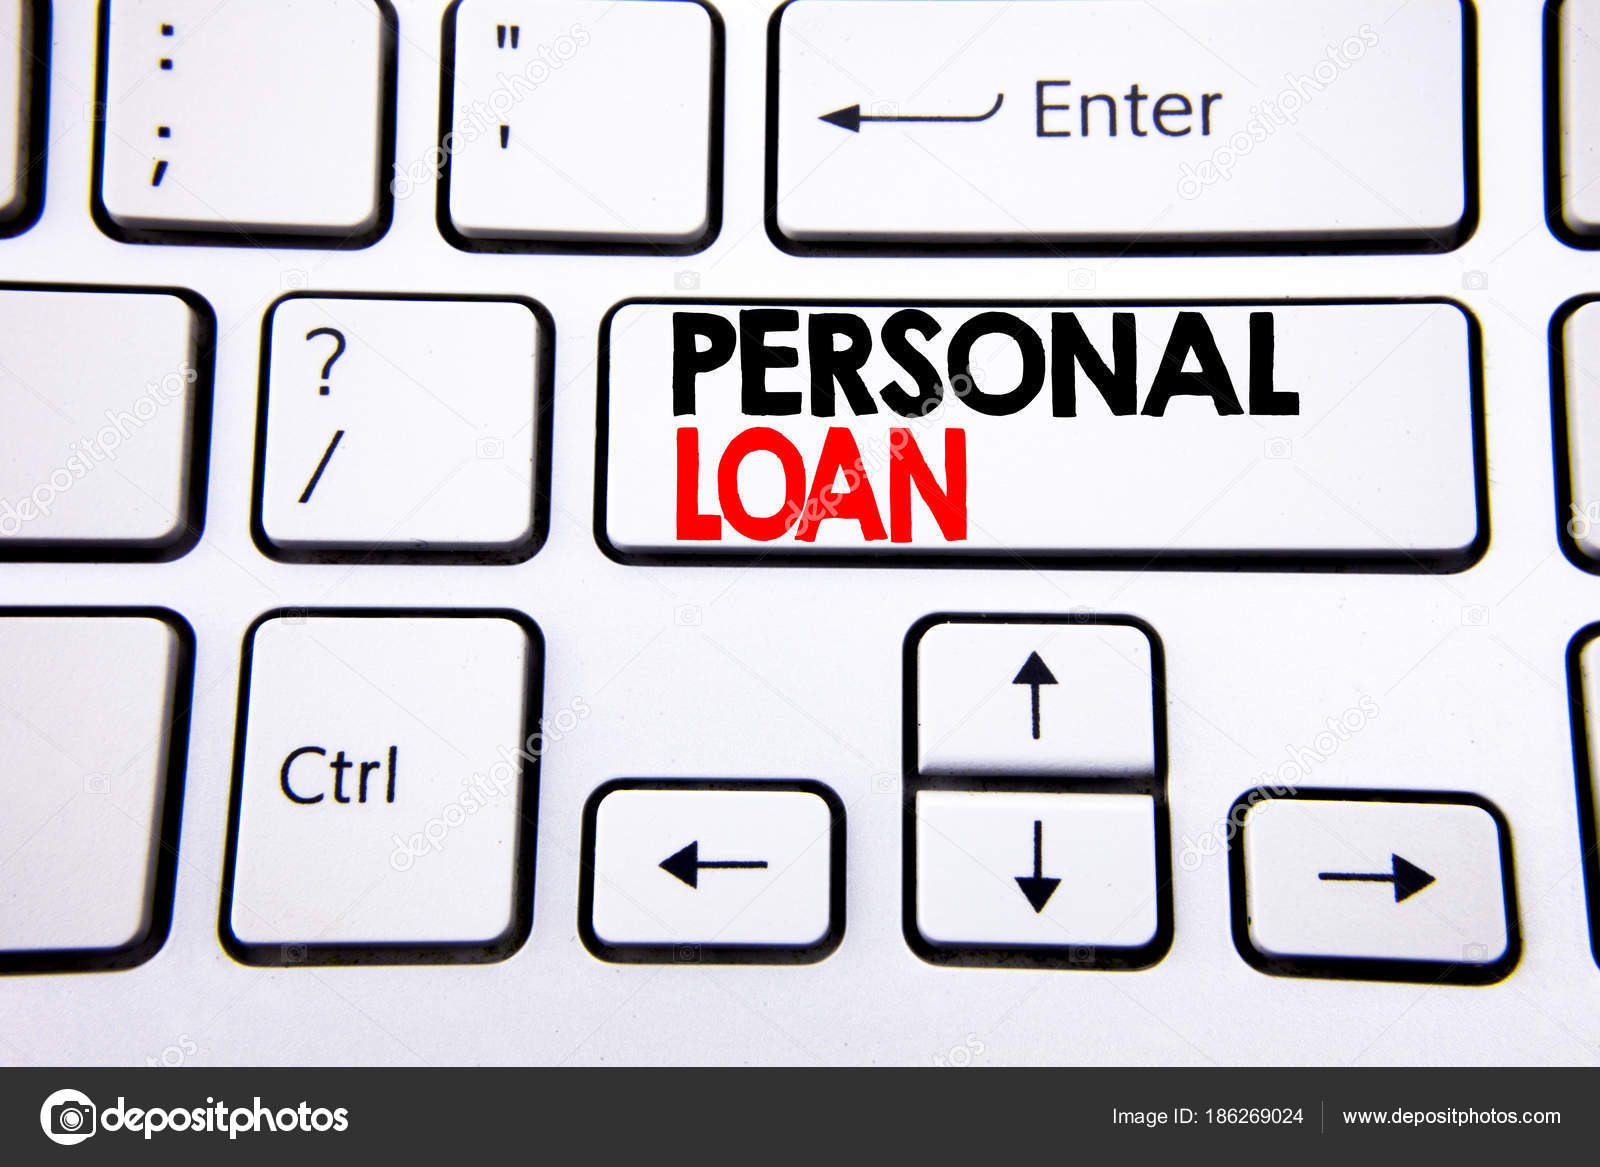 Hand writing text caption inspiration showing Personal Loan